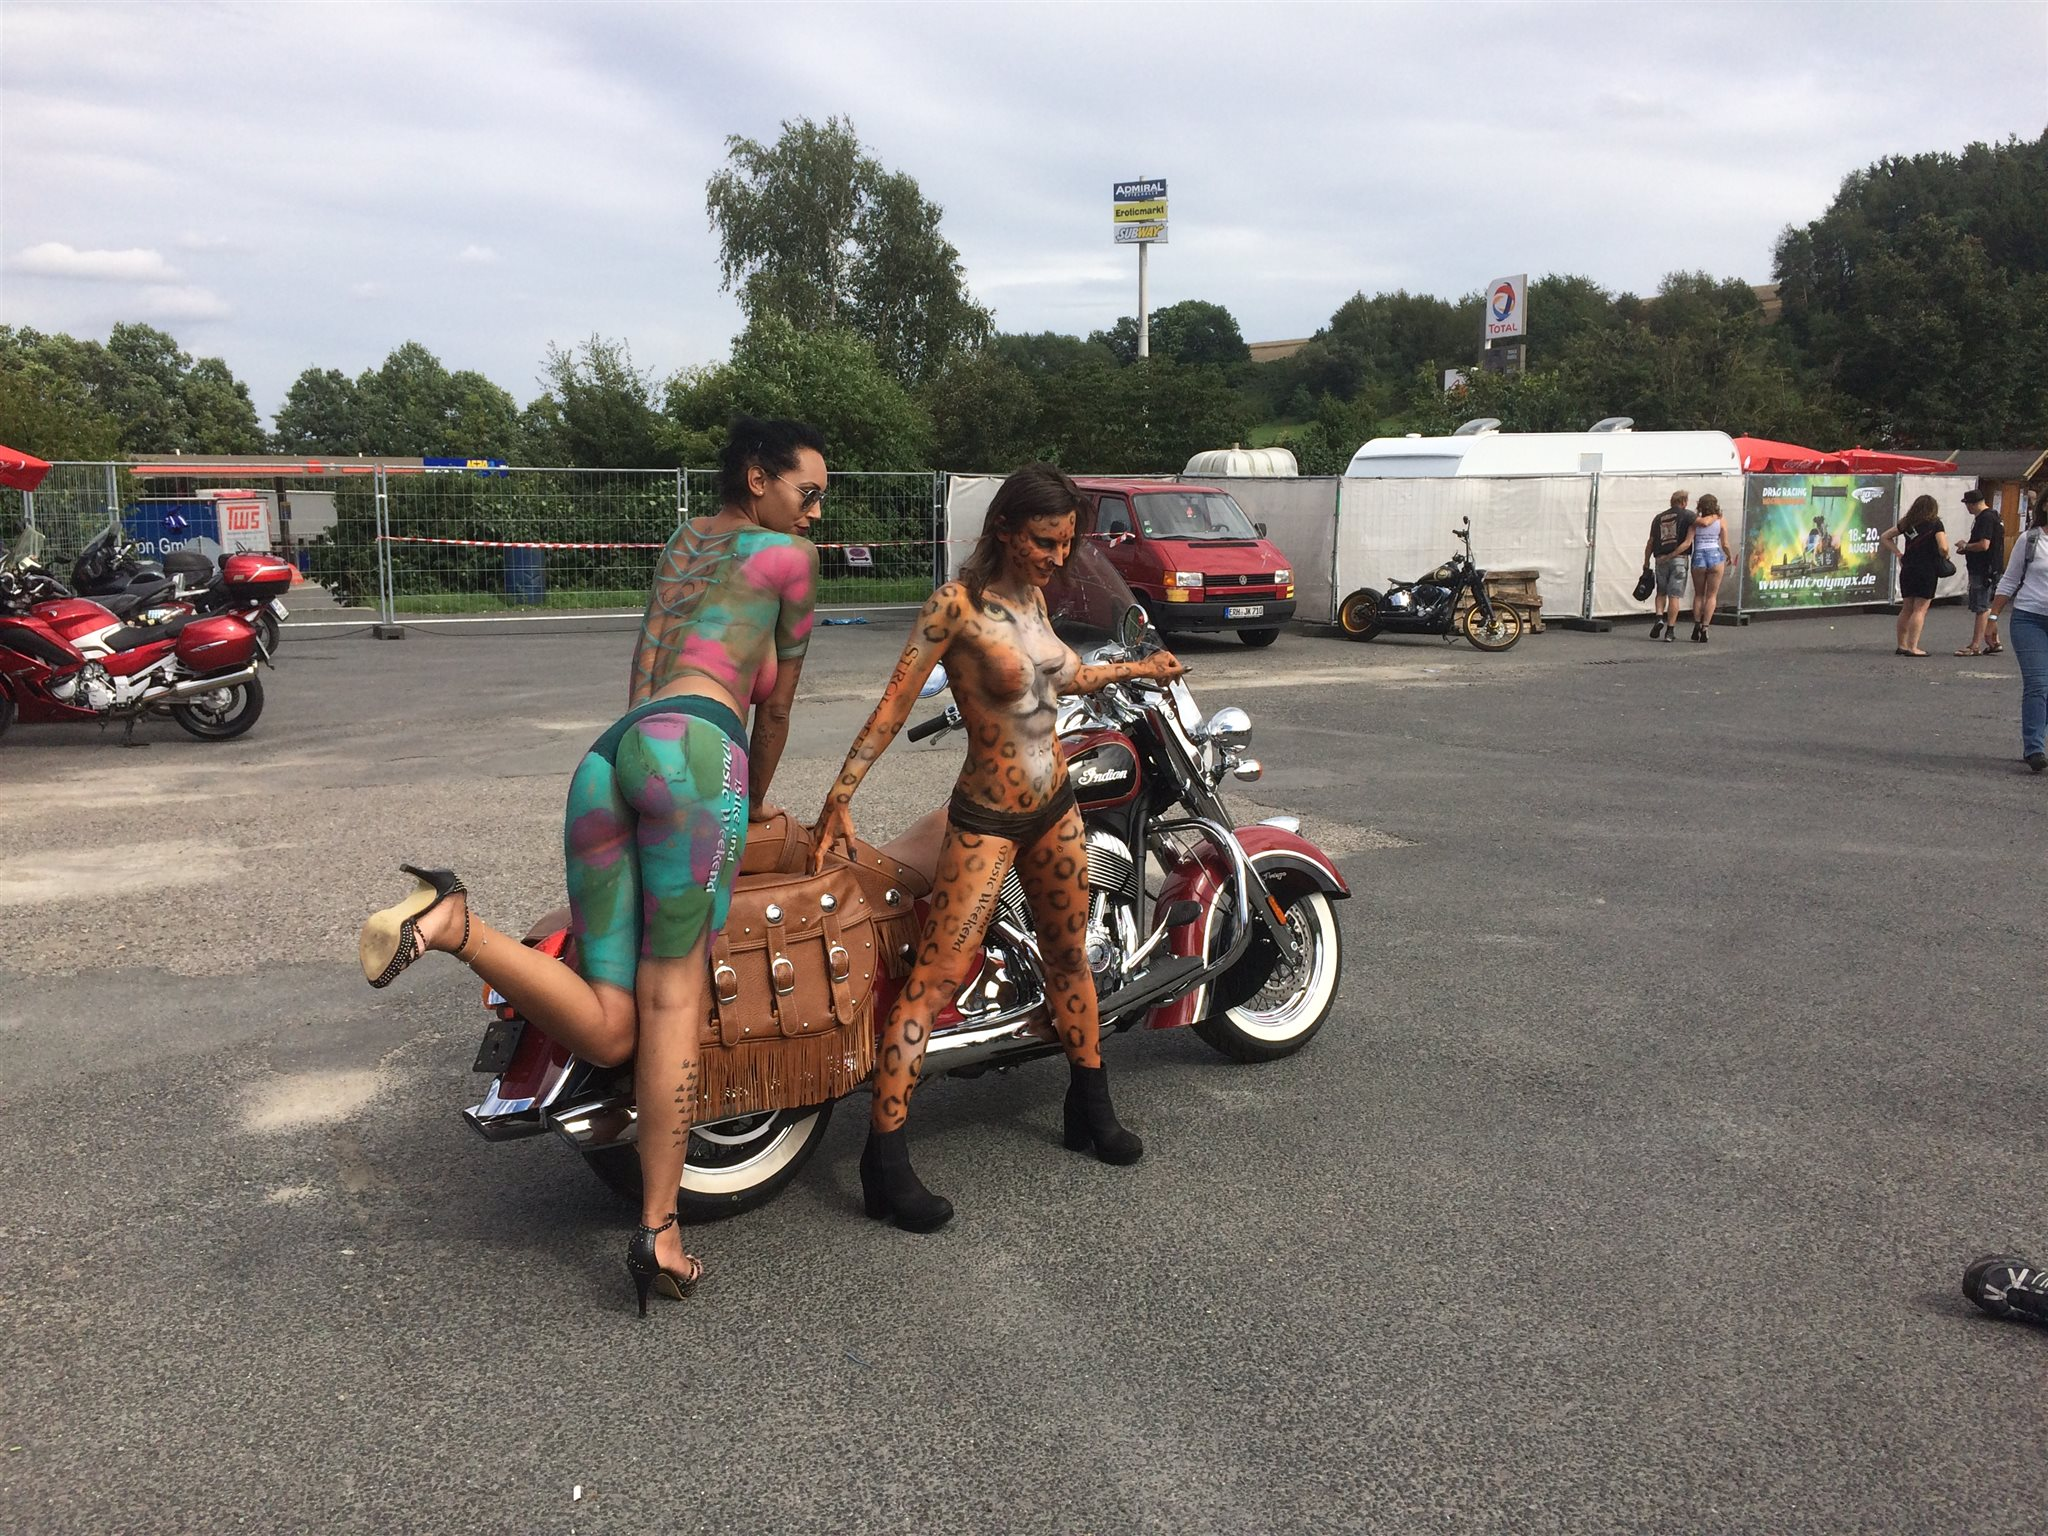 Indian Motorcycles Roadshowtruck meets Bike and Music